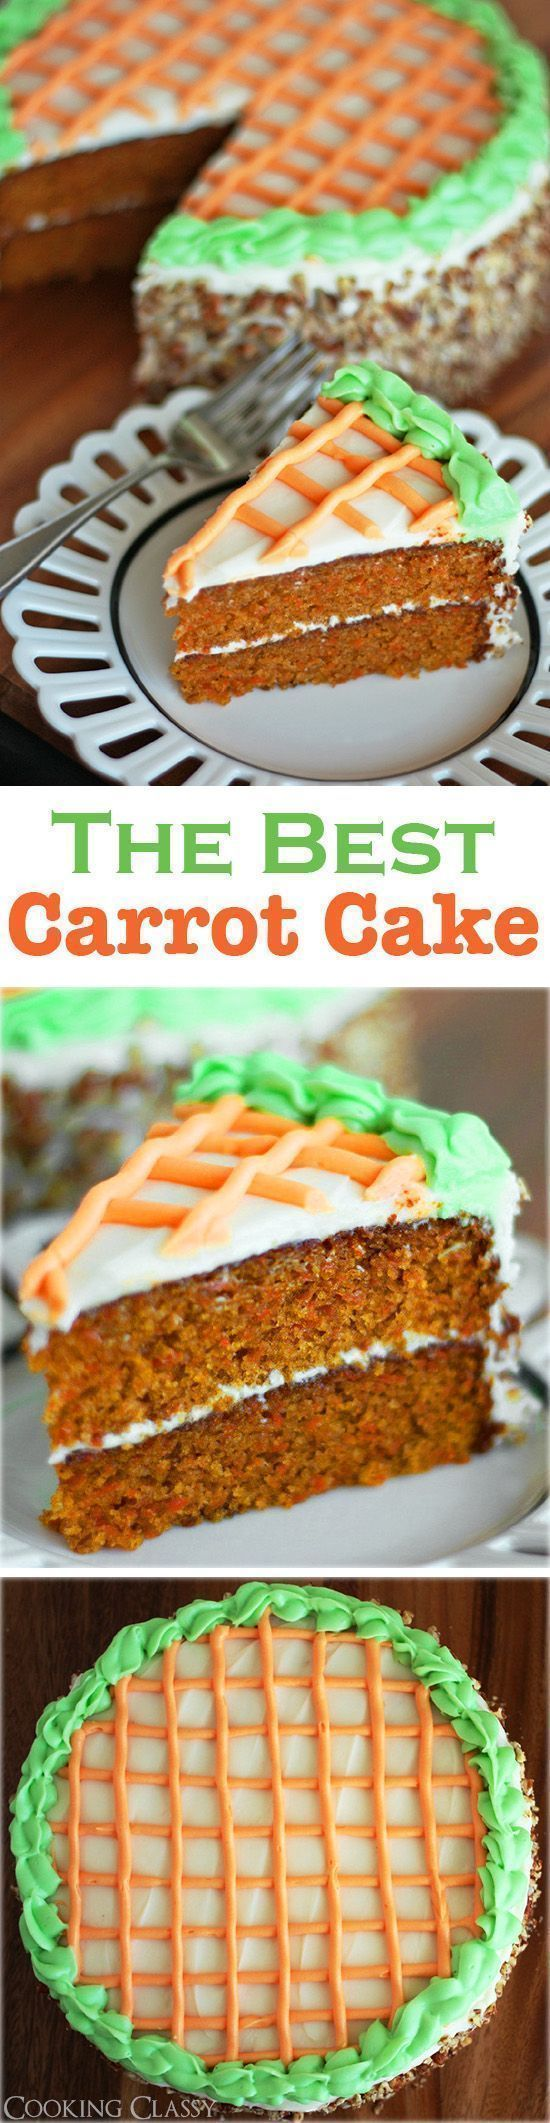 "Carrot Cake with Cream Cheese Frosting - ""this really is the BEST carrot cake I've ever had! It's one of my all time favorite cakes! I make it several times ever year."""